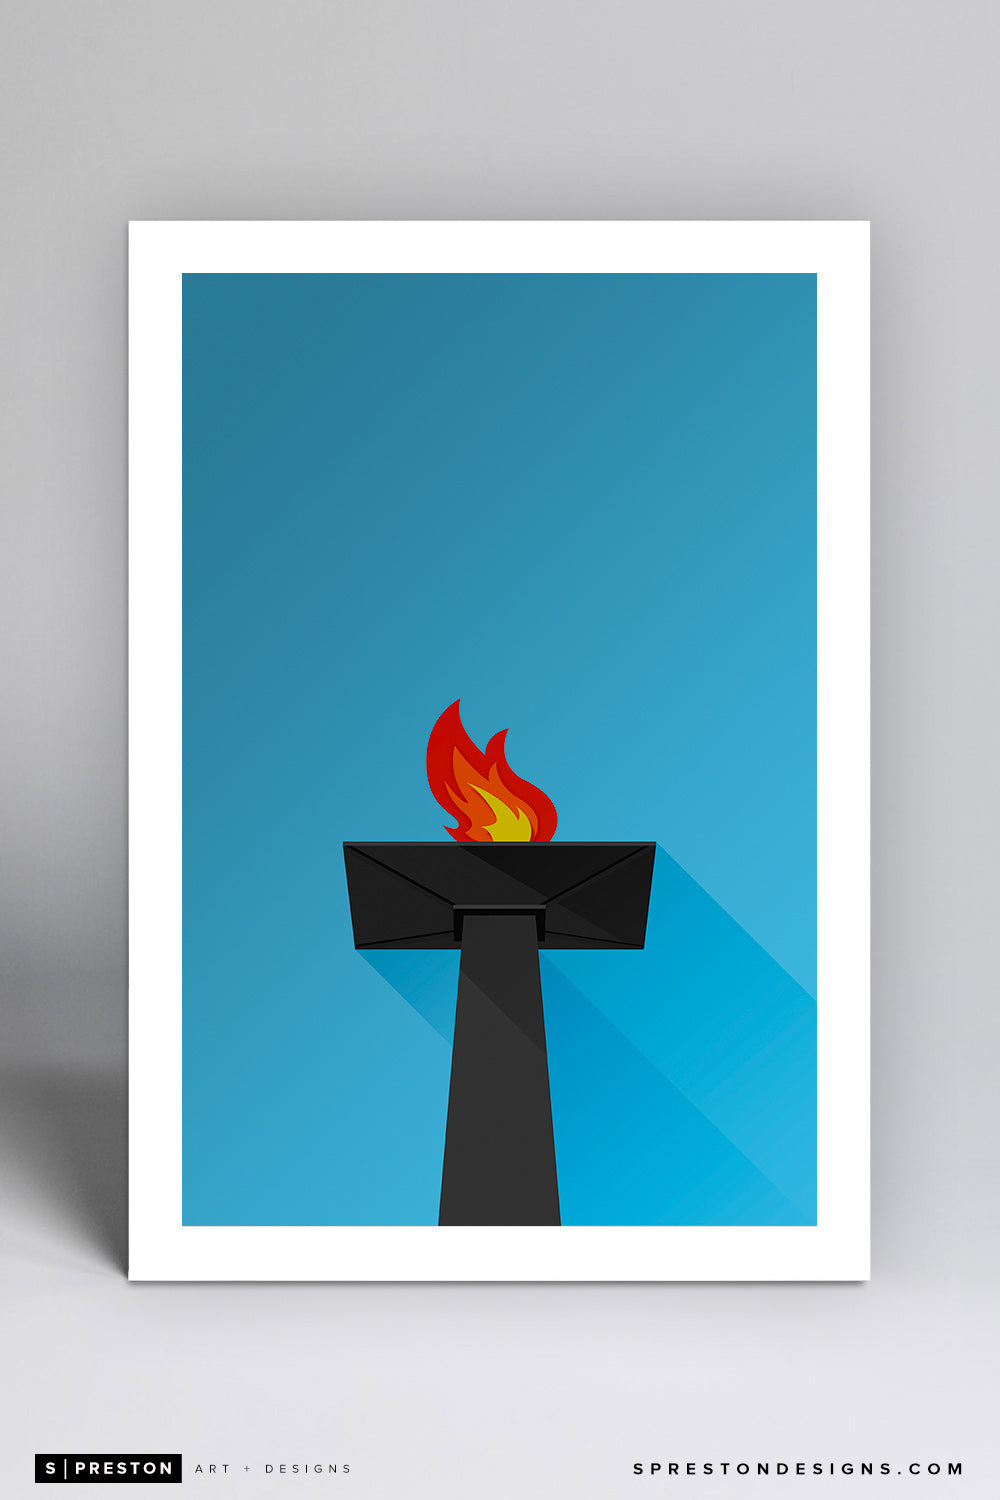 Minimalist Oakland Coliseum Art Print - Oakland Raiders - S. Preston Art + Designs